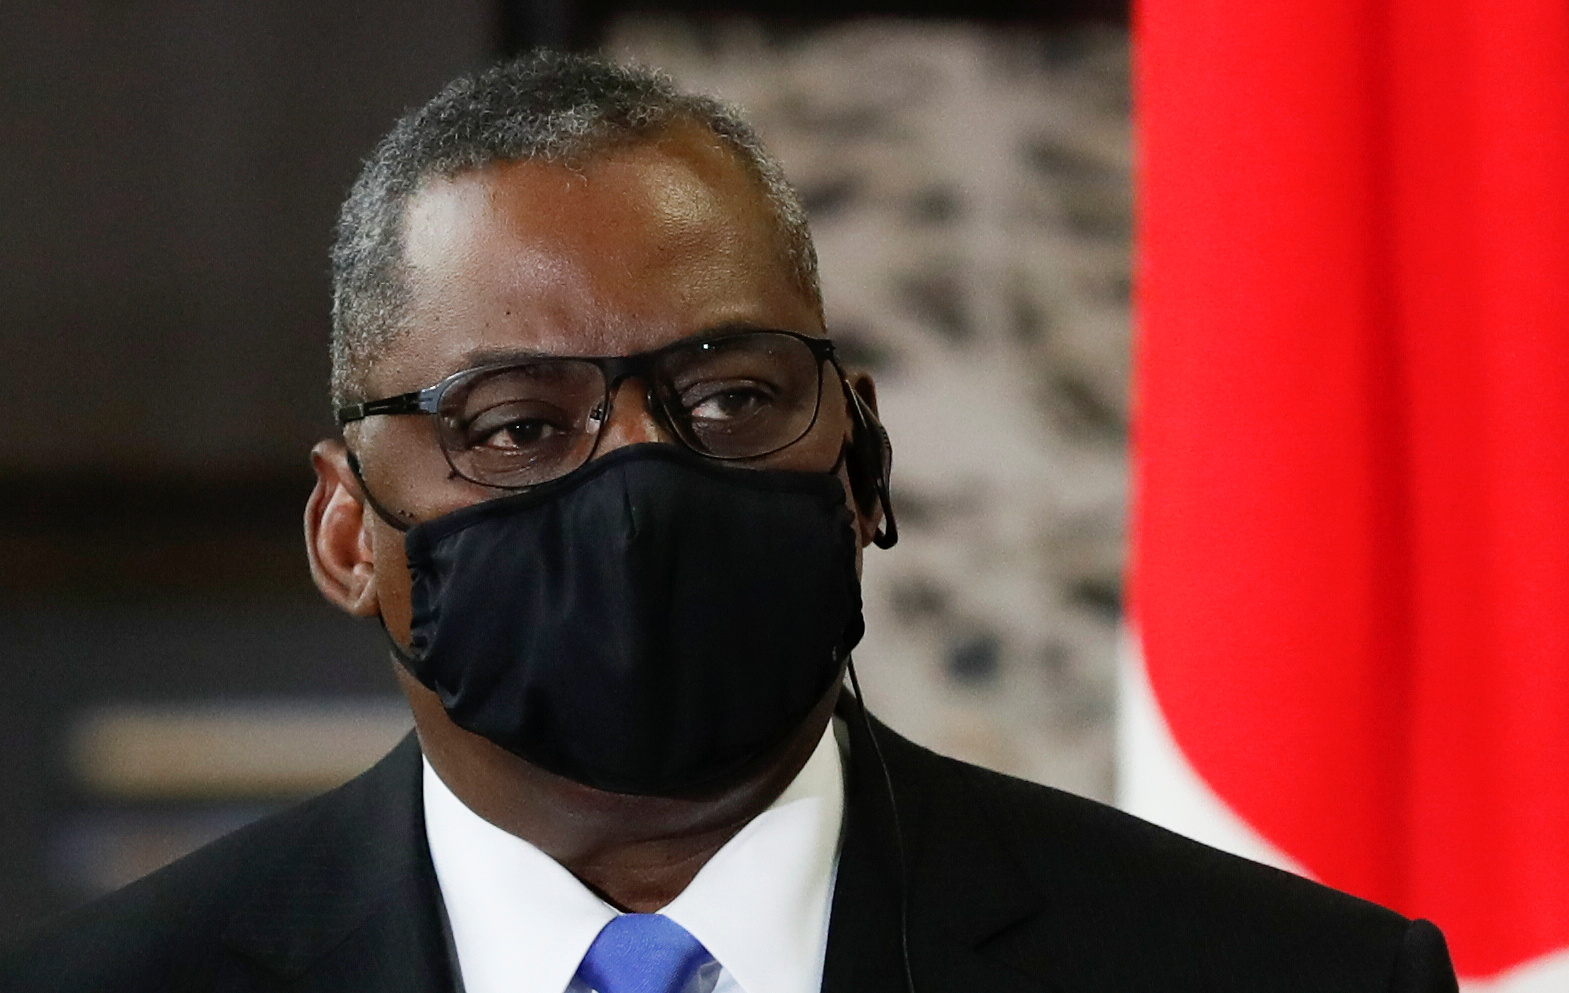 U.S. Defense Secretary Lloyd Austin attends a joint news conference after the 2+2 Meeting with Secretary of State Antony Blinken, Japan's Foreign Minister Toshimitsu Motegi and Defence Minister Nobuo Kishi at Iikura Guest House in Tokyo, Japan, March 16, 2021. REUTERS/Kim Kyung-Hoon/Pool